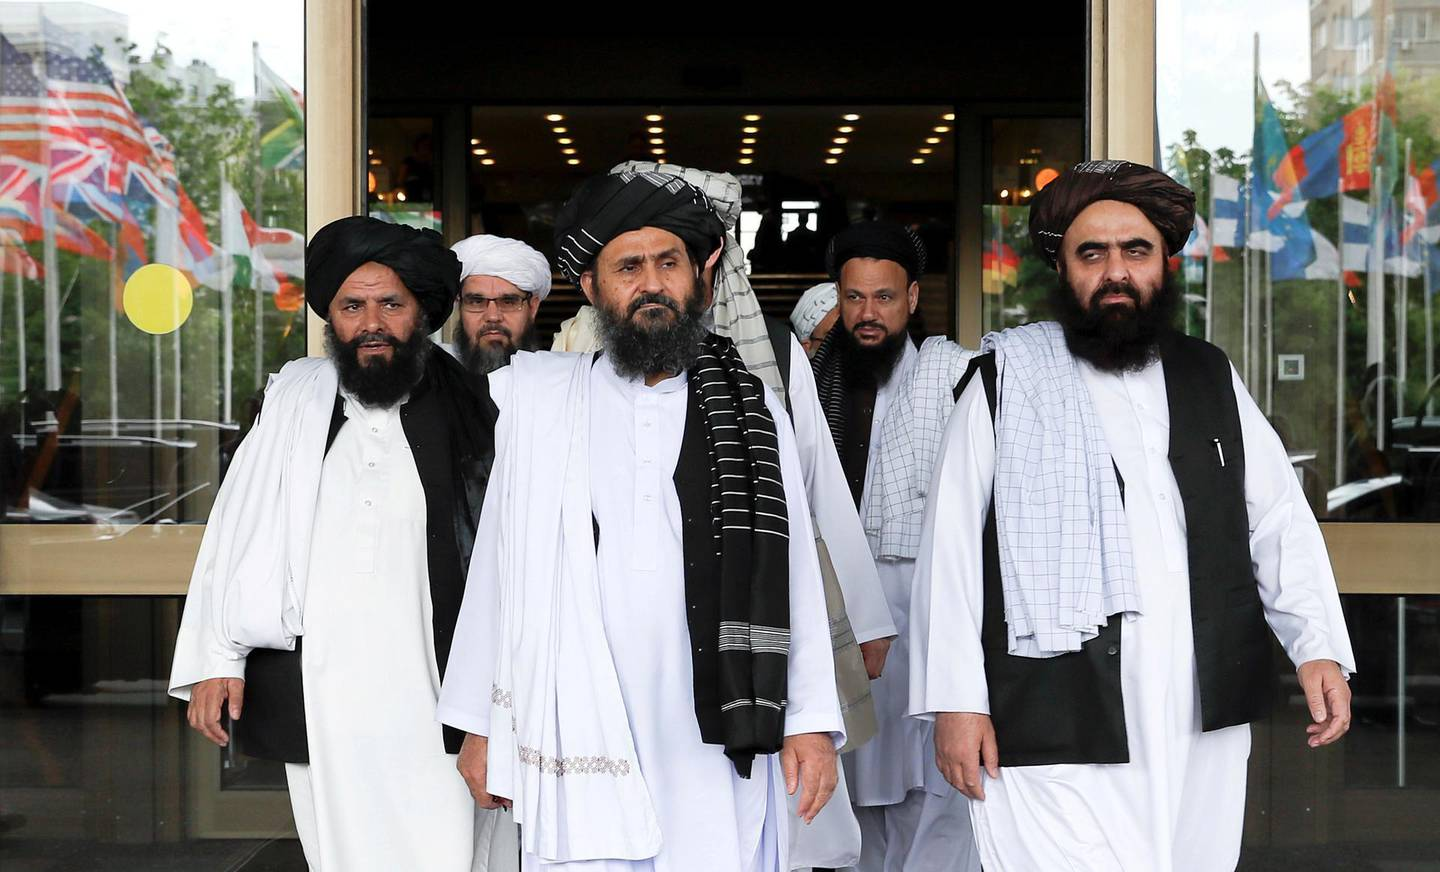 FILE PHOTO: Members of a Taliban delegation leaving after peace talks with Afghan senior politicians in Moscow, Russia May 30, 2019. REUTERS/Evgenia Novozhenina/File Photo